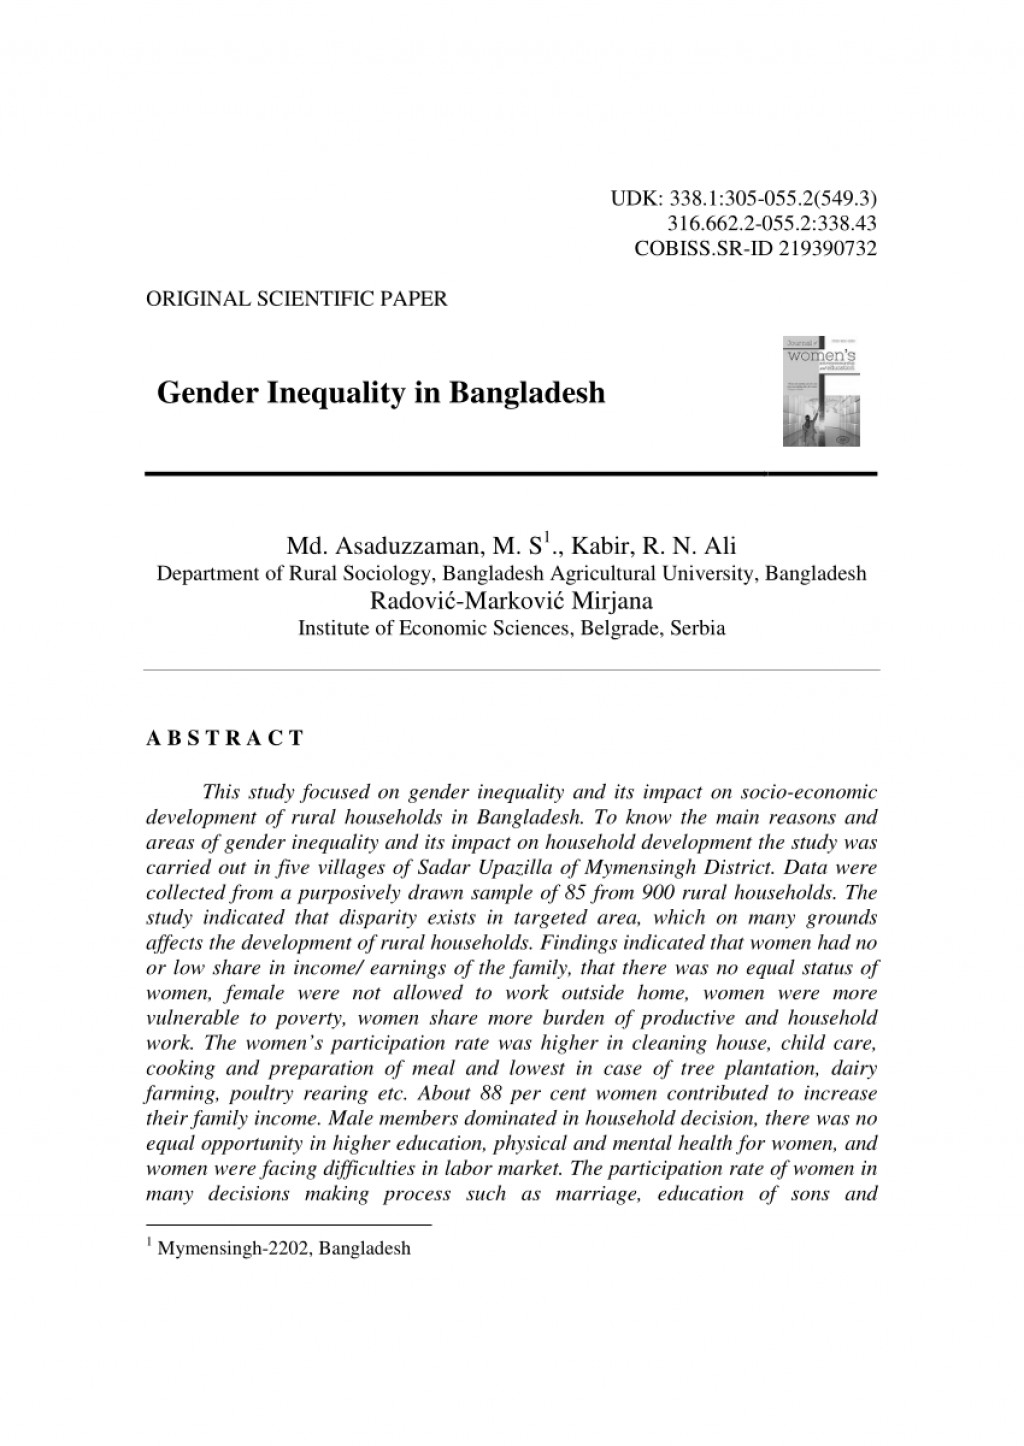 013 Gender Equality In The Workplace Essay Example Wondrous Examples Of Inequality Argumentative Outline Large